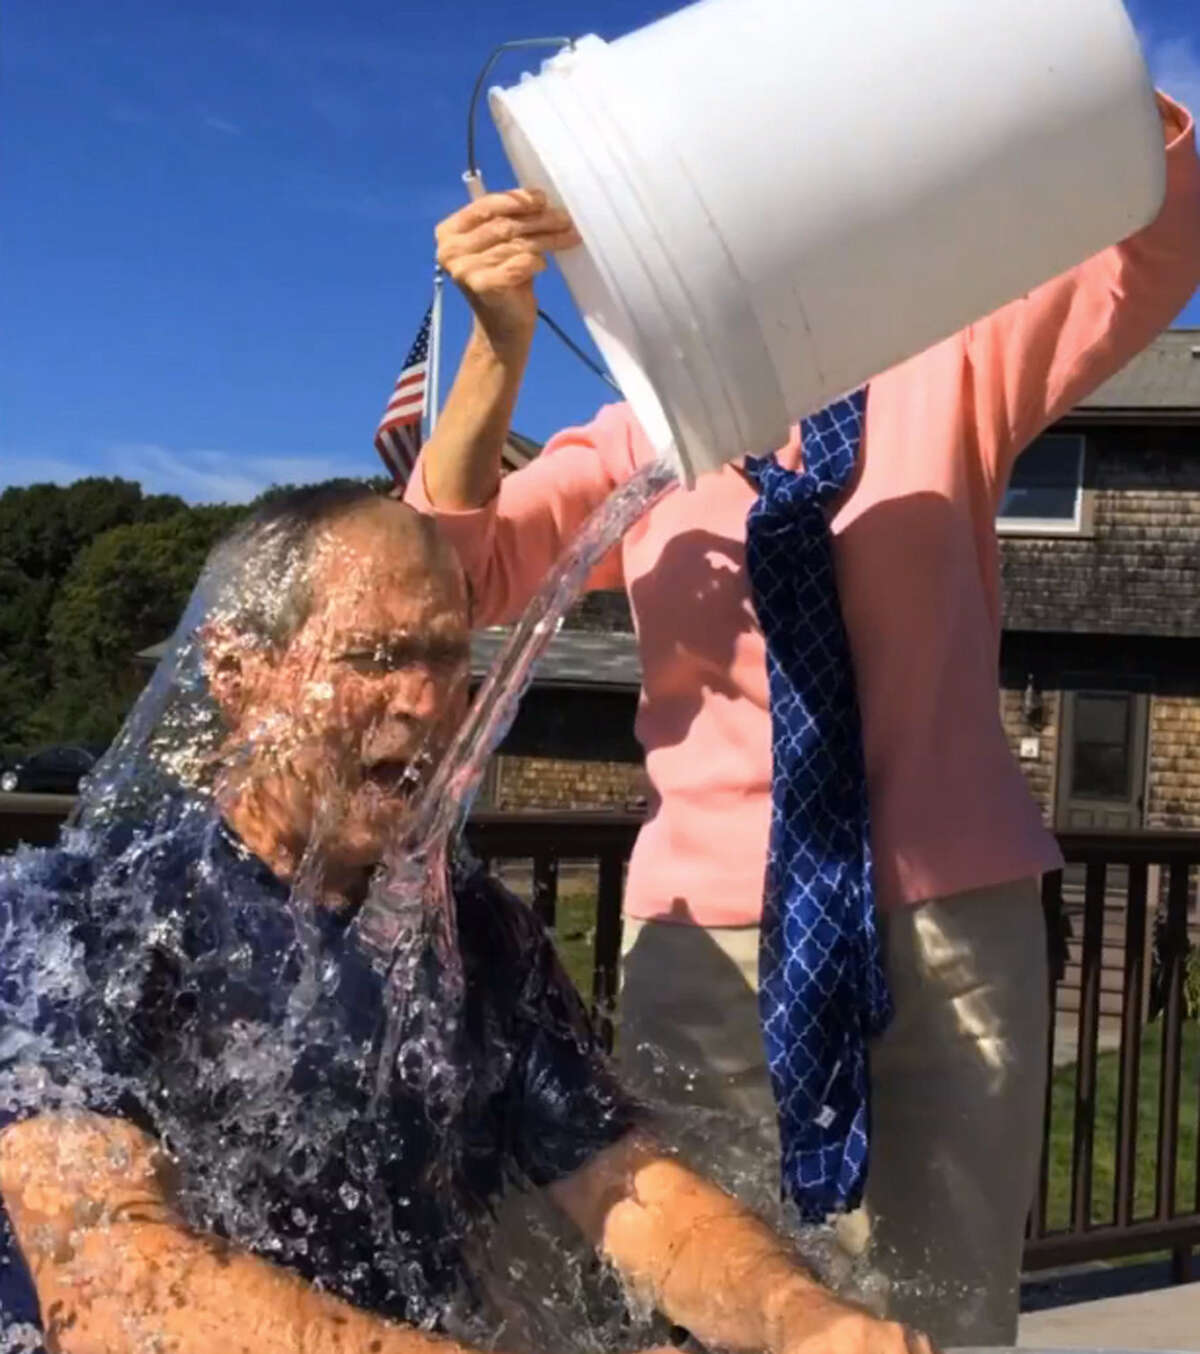 Former President George W. Bush participates in the ALS Ice Bucket Challenge with the help of his wife, Laura, in Kennebunkport, Maine.